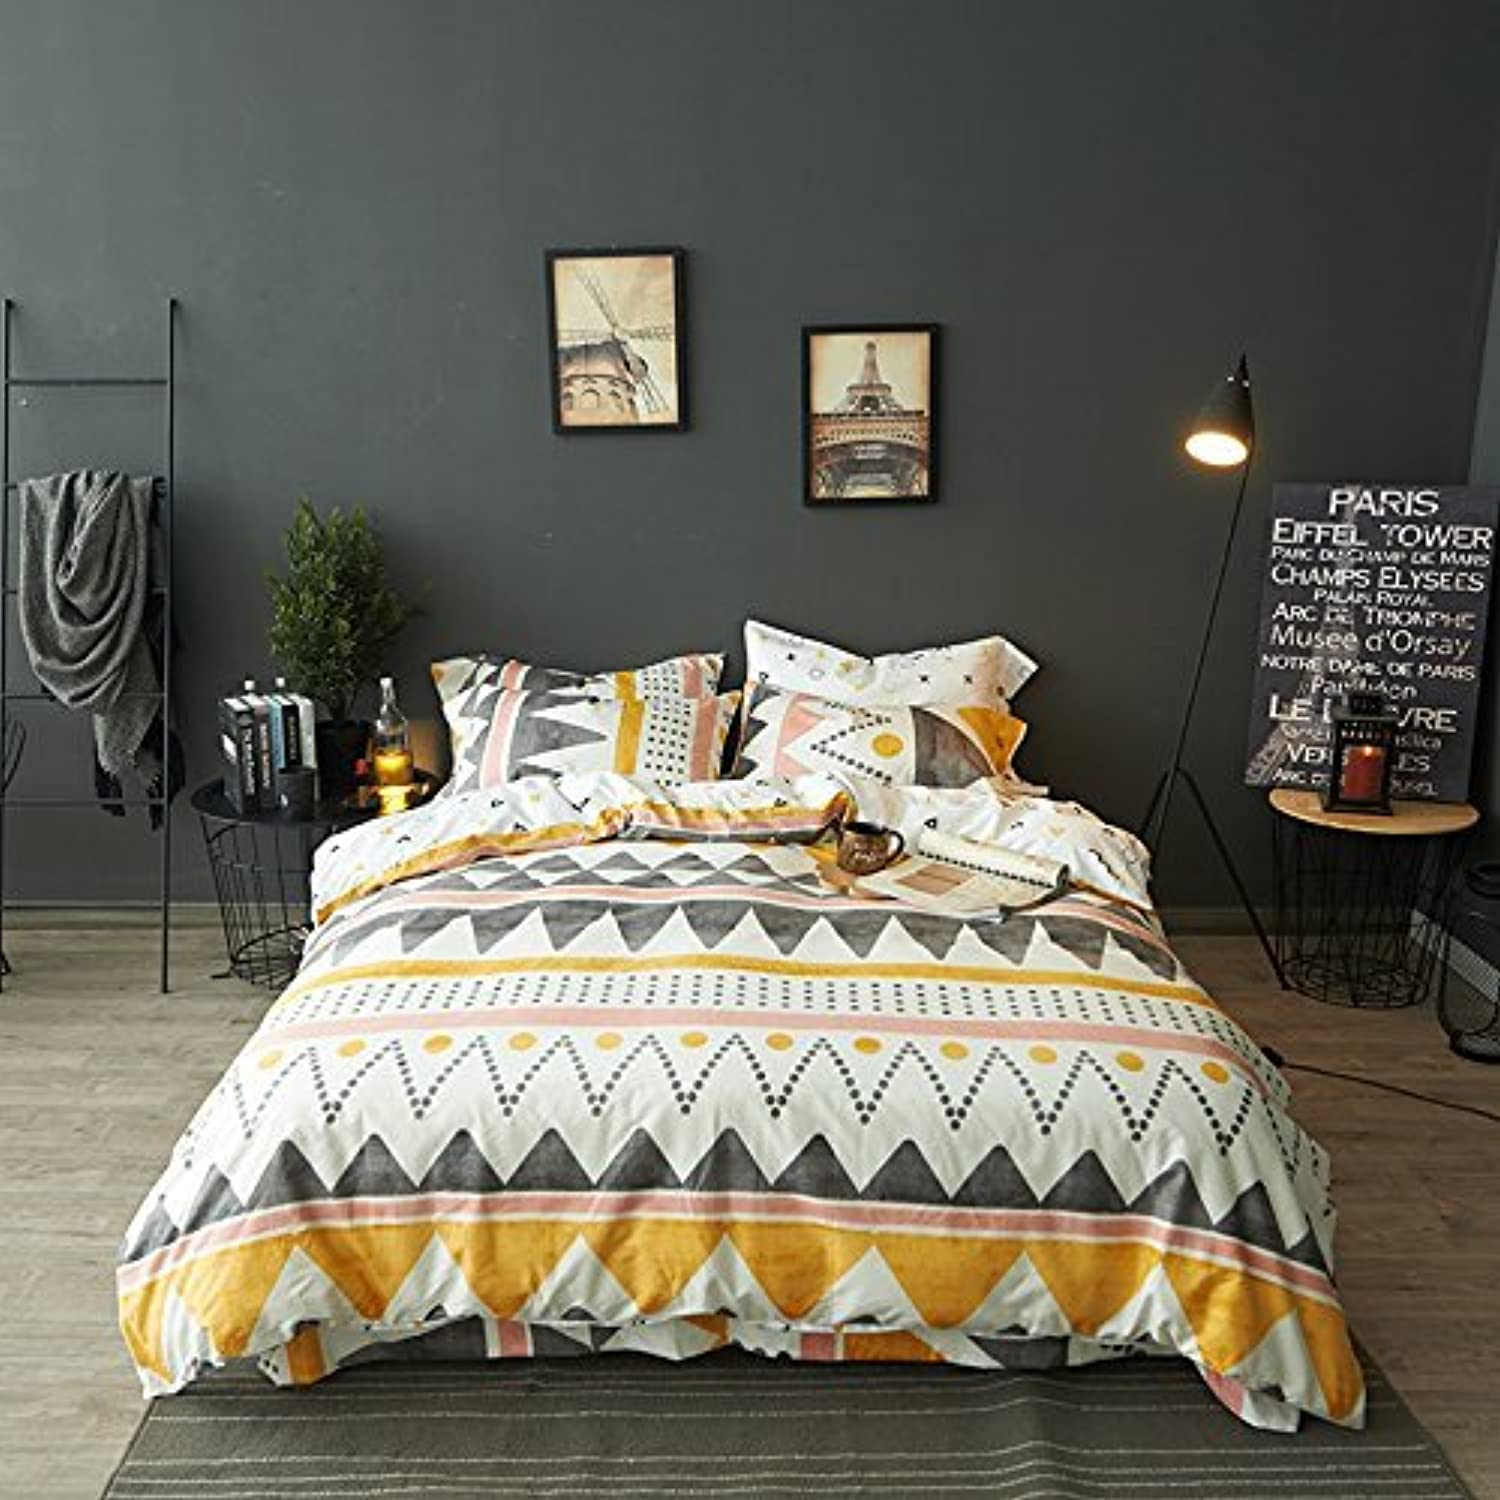 TheFit Paisley Textile Bedding for Young Adult W43 Mountain Boho